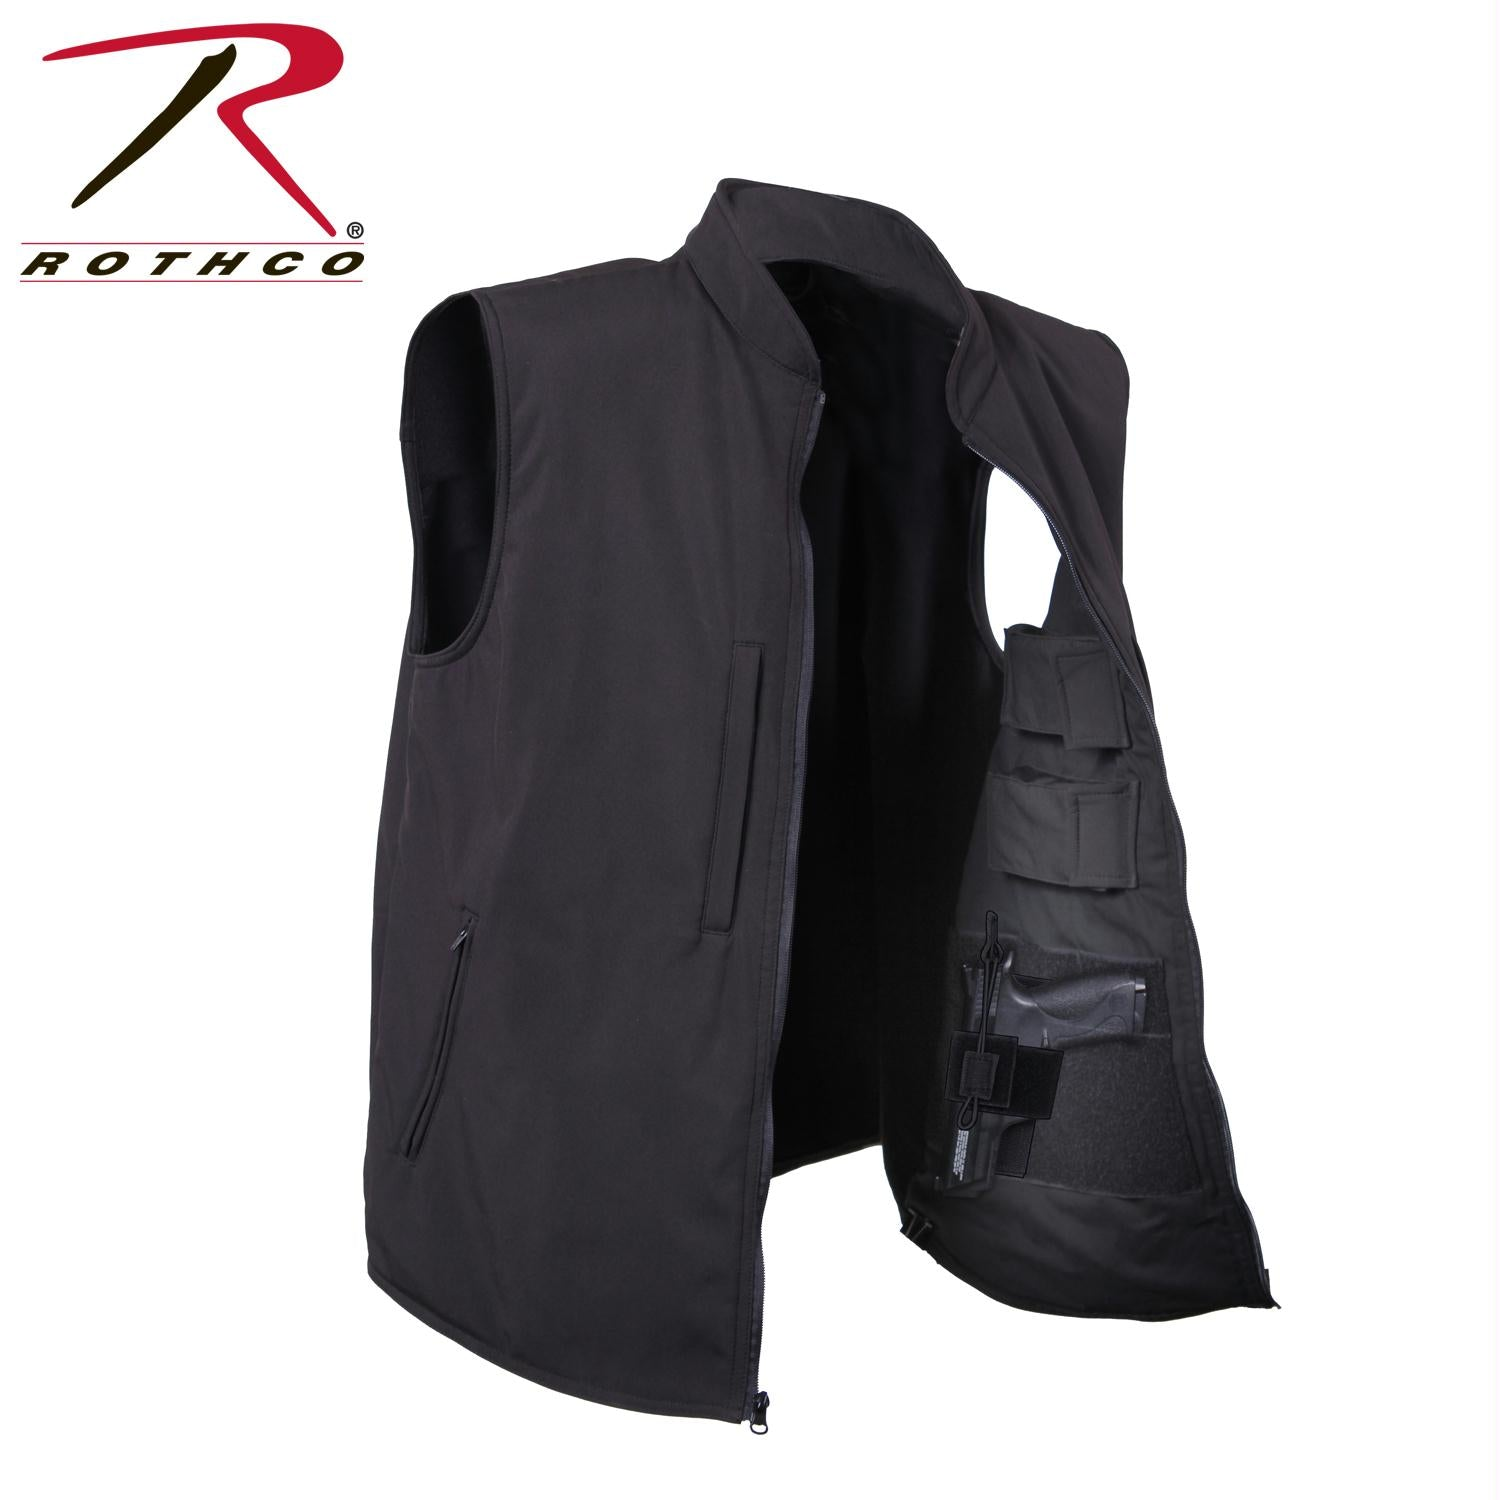 Rothco Concealed Carry Soft Shell Vest - Black / S